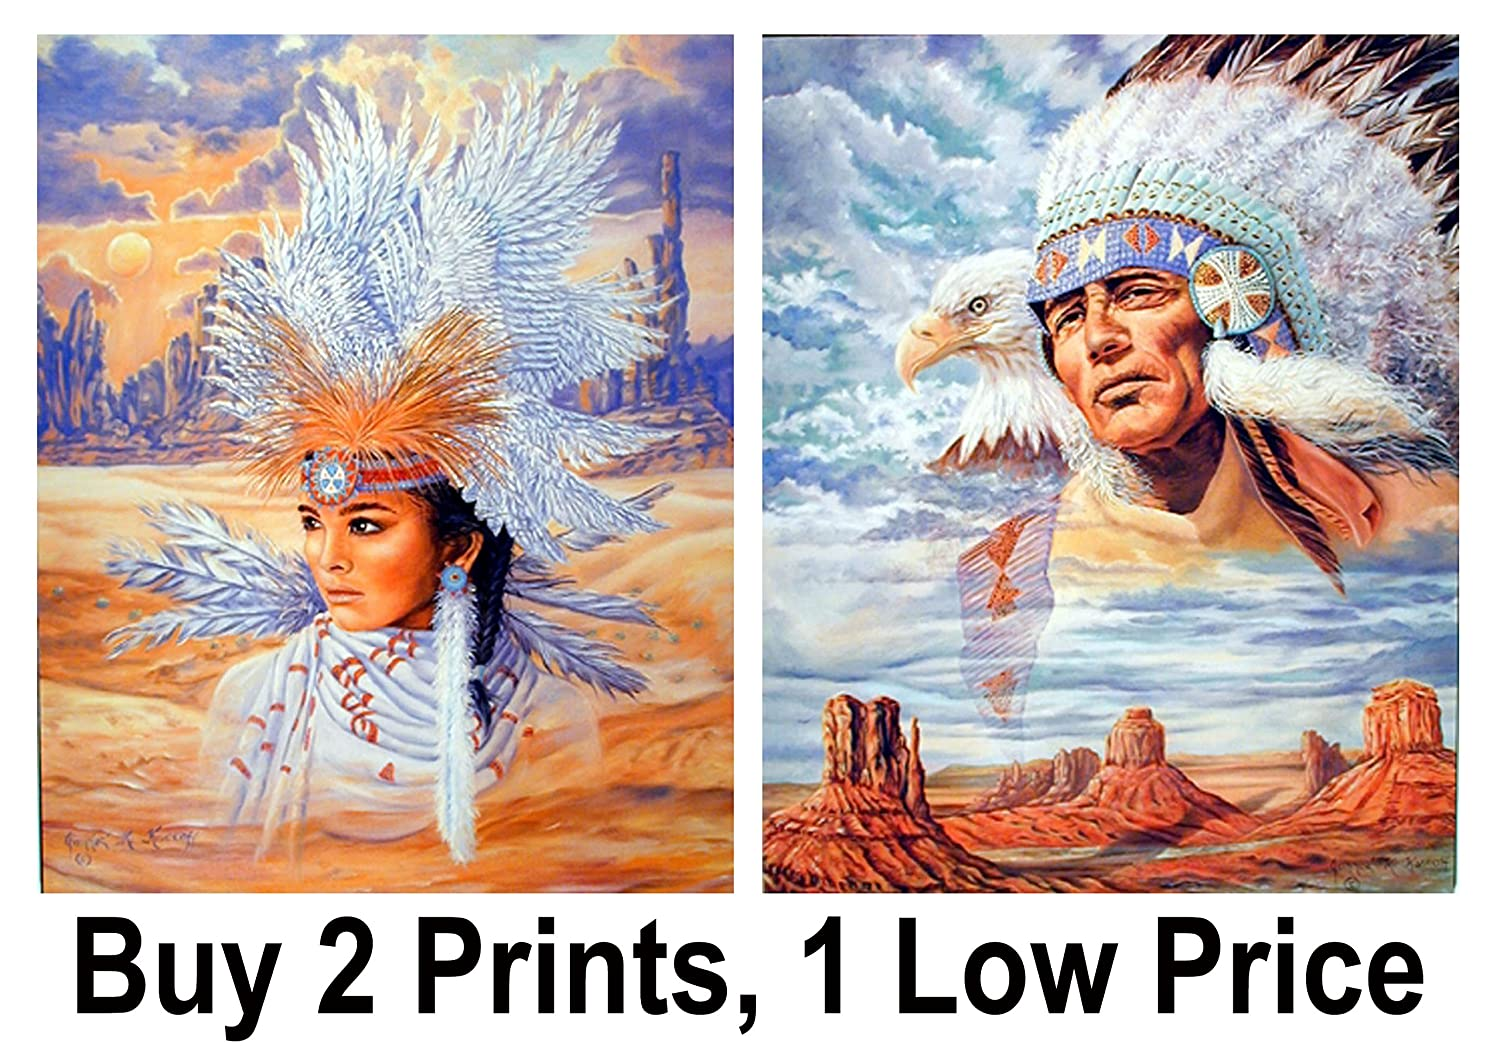 a4e4c8d12e0 Amazon.com  Native American Indian Maiden Headdress and Indian Chief Eagle  Two Set 8x10 Wall Decor Art Print Posters  Posters   Prints